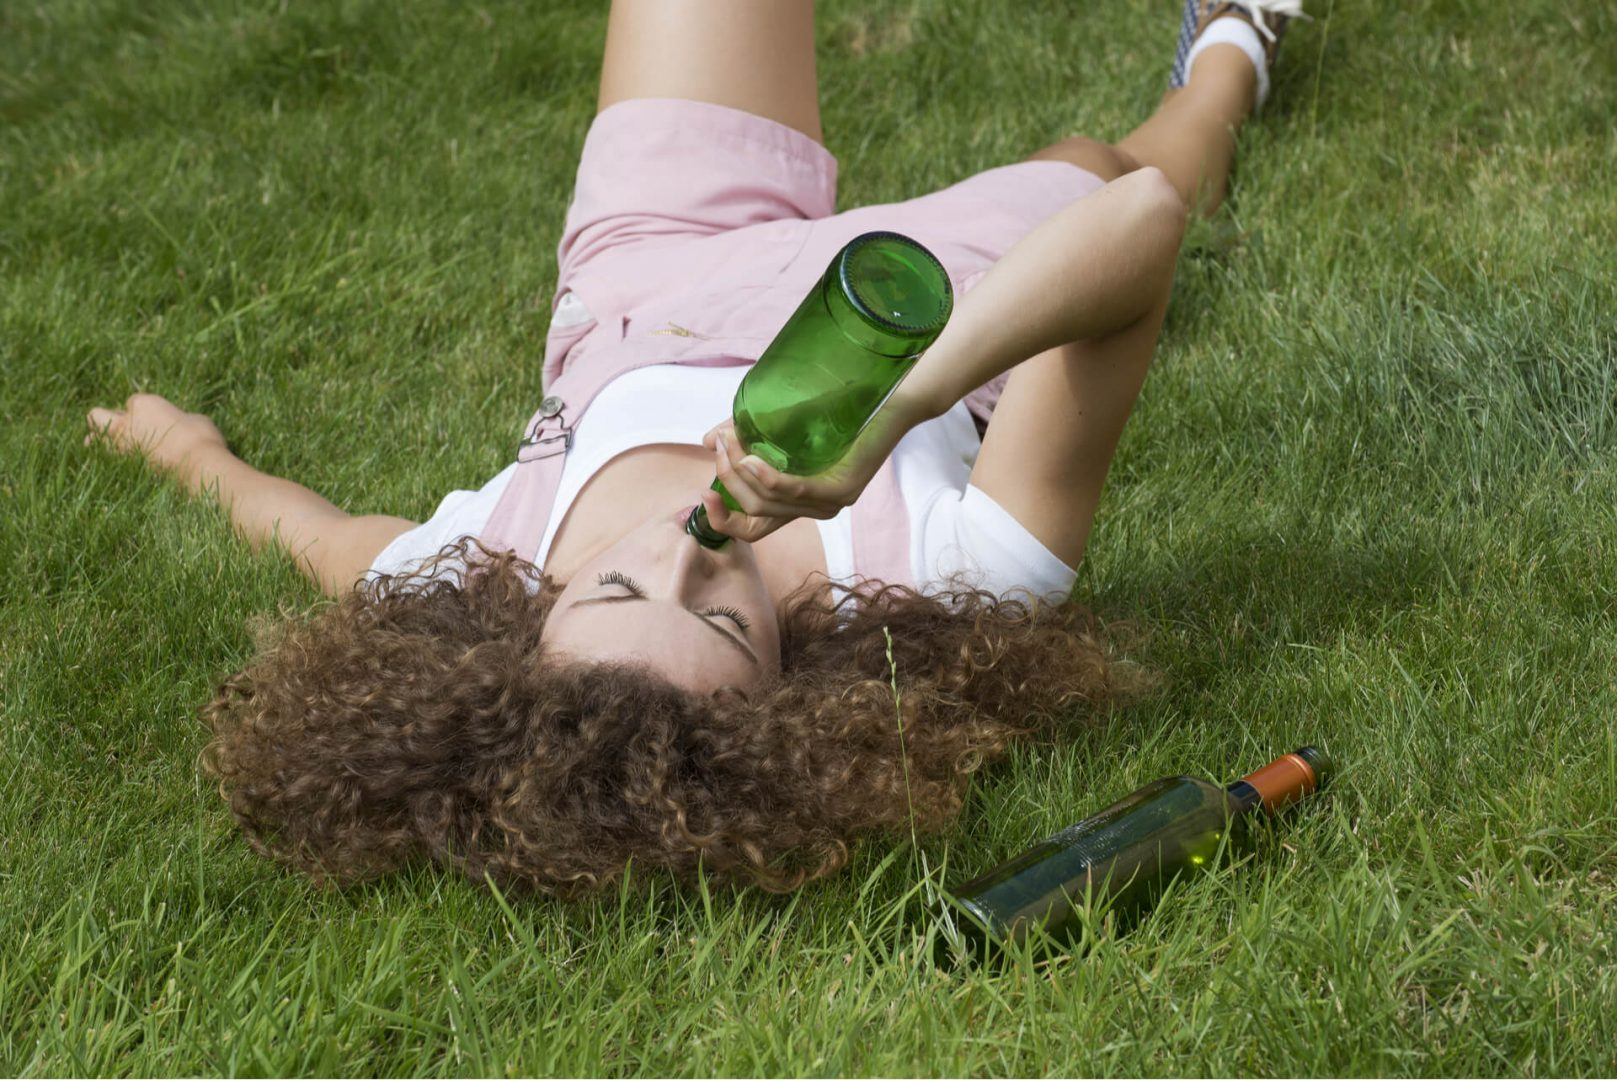 Woman Drinking Wine Being Publicly Intoxicated